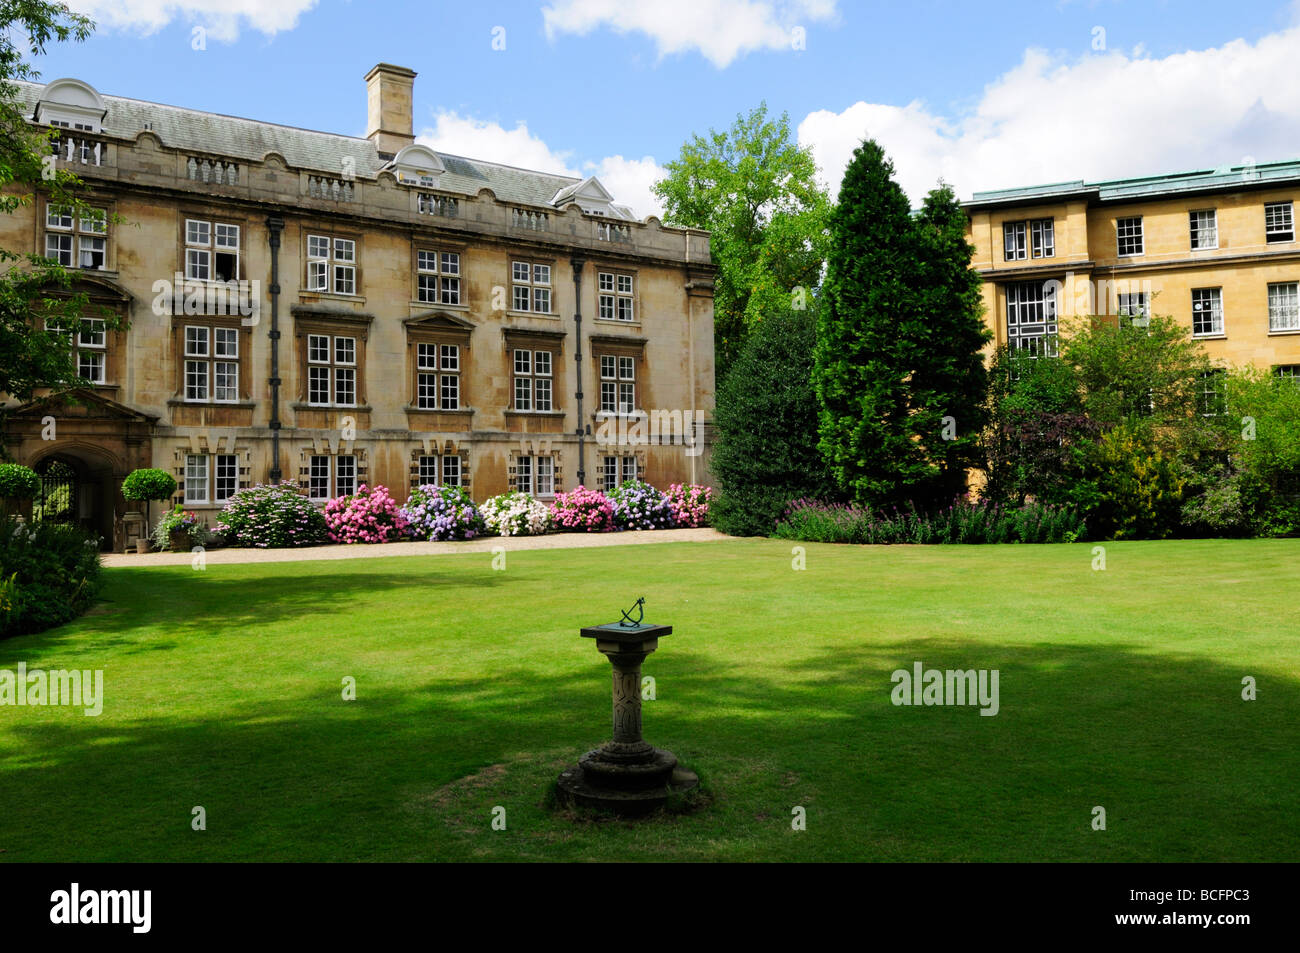 The Fellows Garden at Christs College, Cambridge, England, UK - Stock Image